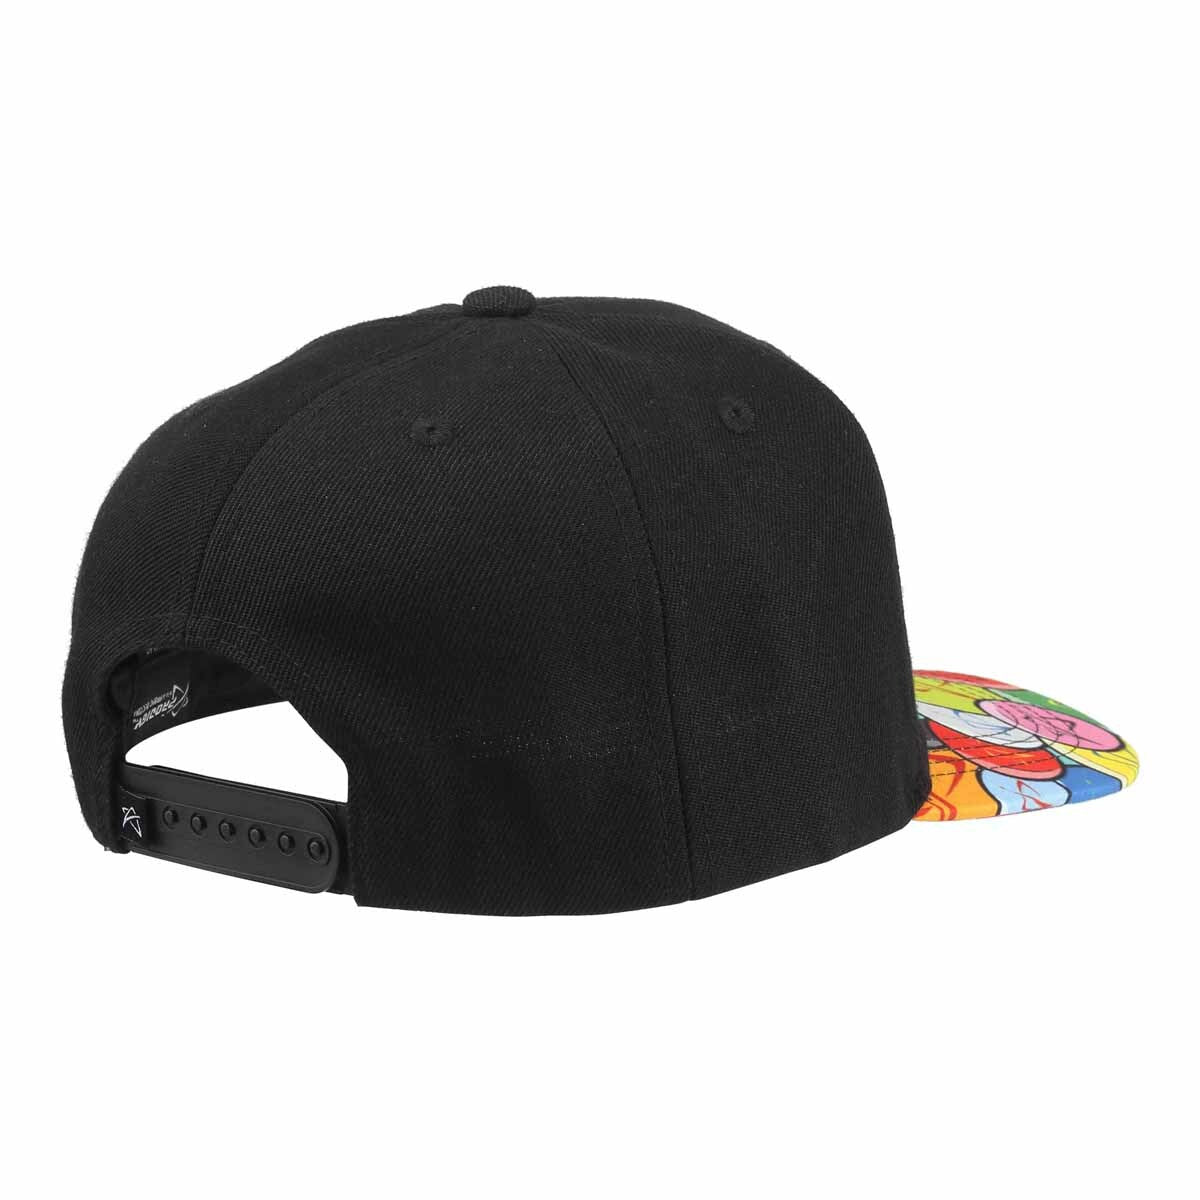 Prodigy Logo Patch Snapback Hats